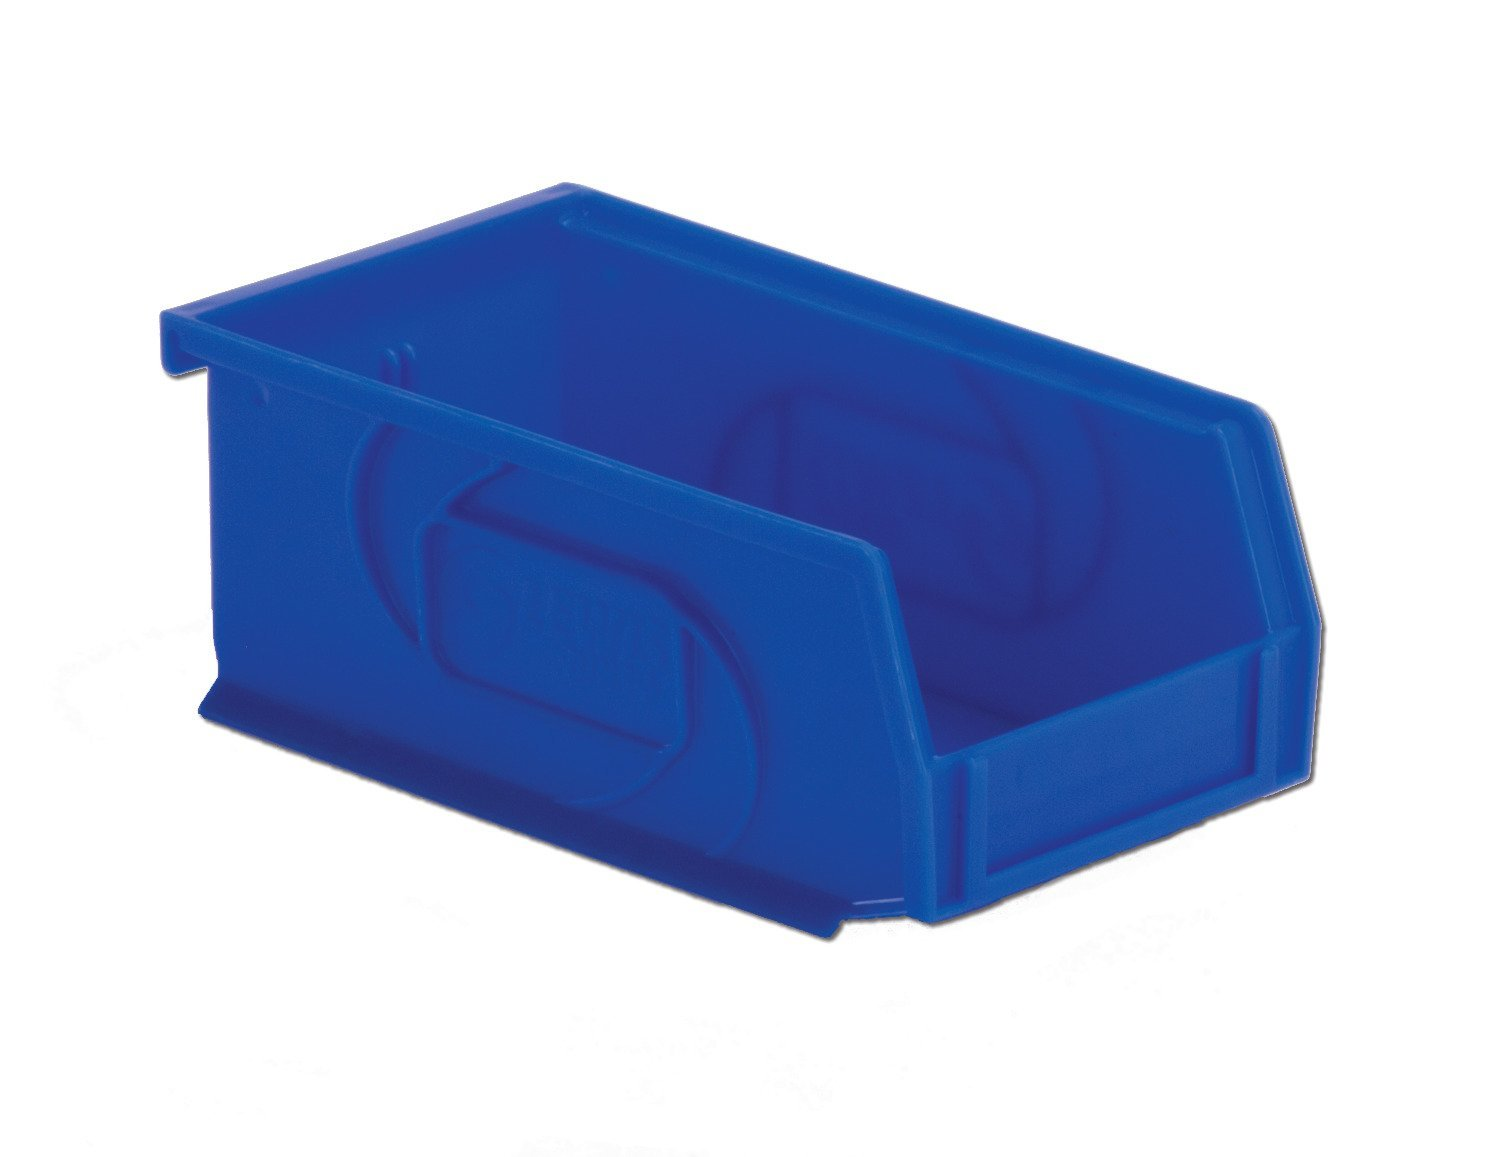 PB148-7 | 14x8x7 Parts Bin | Pack of 12